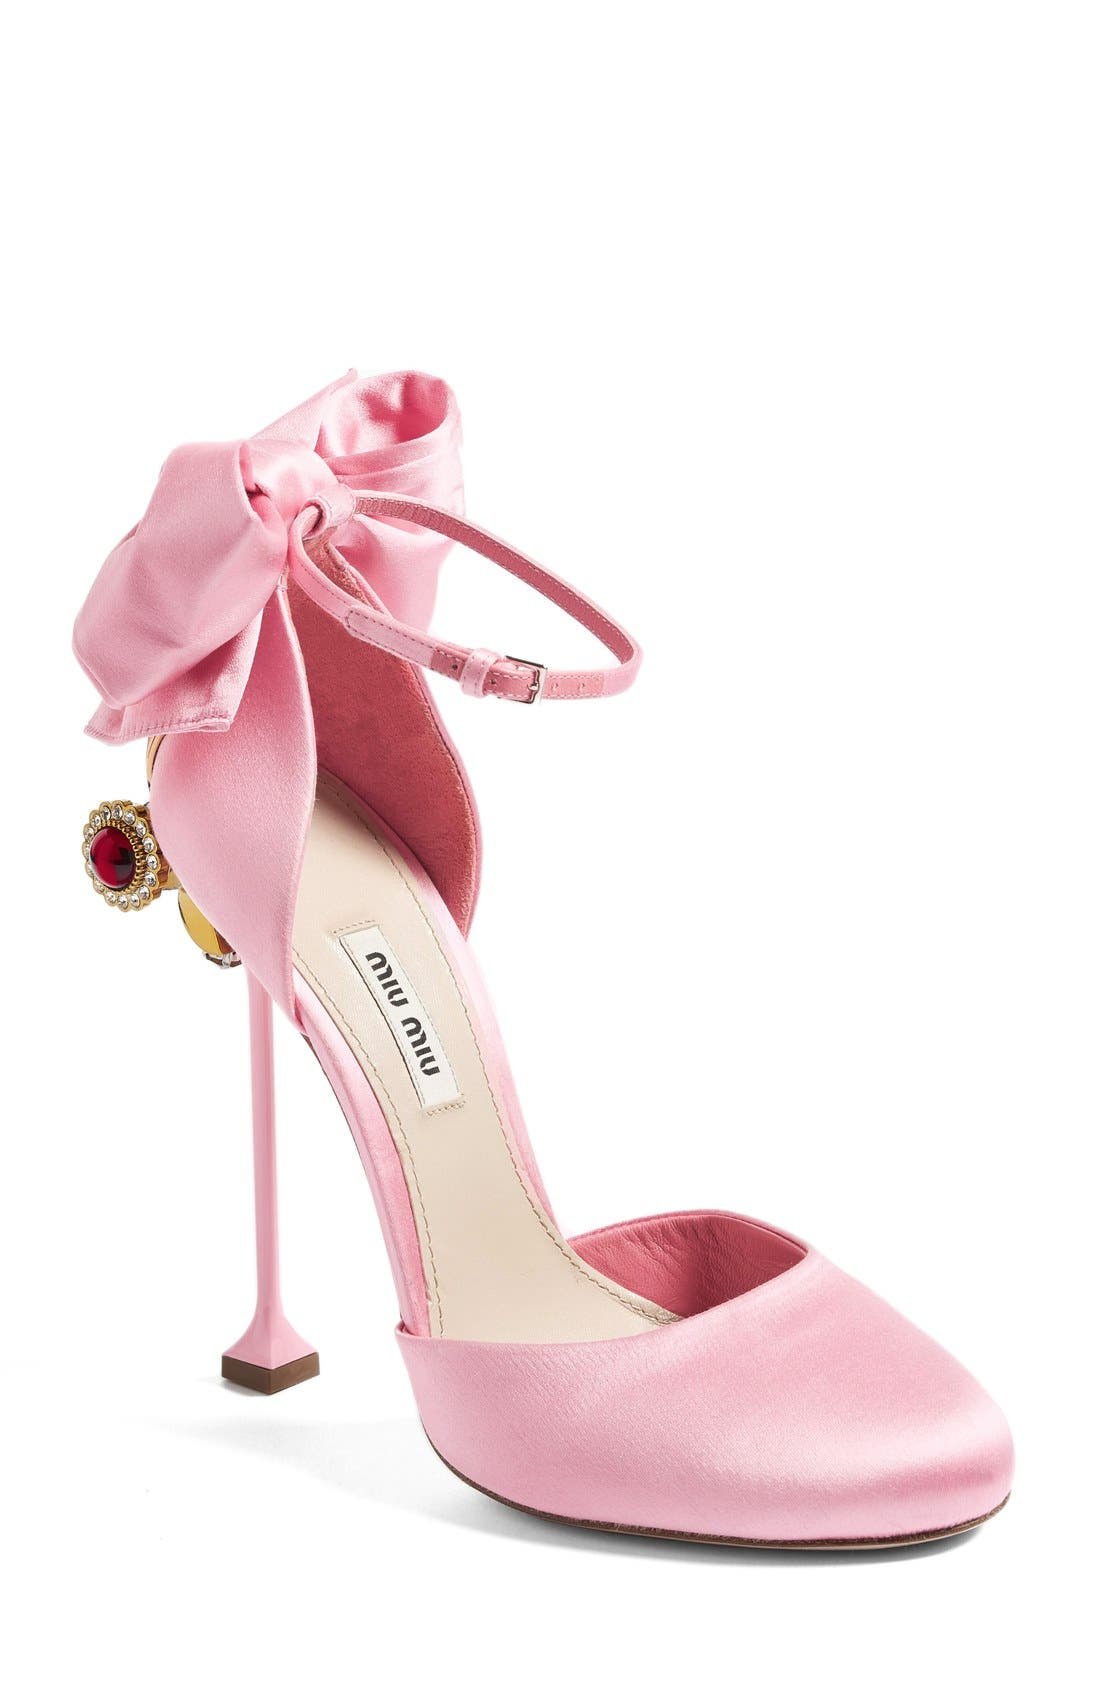 Main Image - Miu Miu Crystal Bow Tie Ankle Strap Pump (Women)